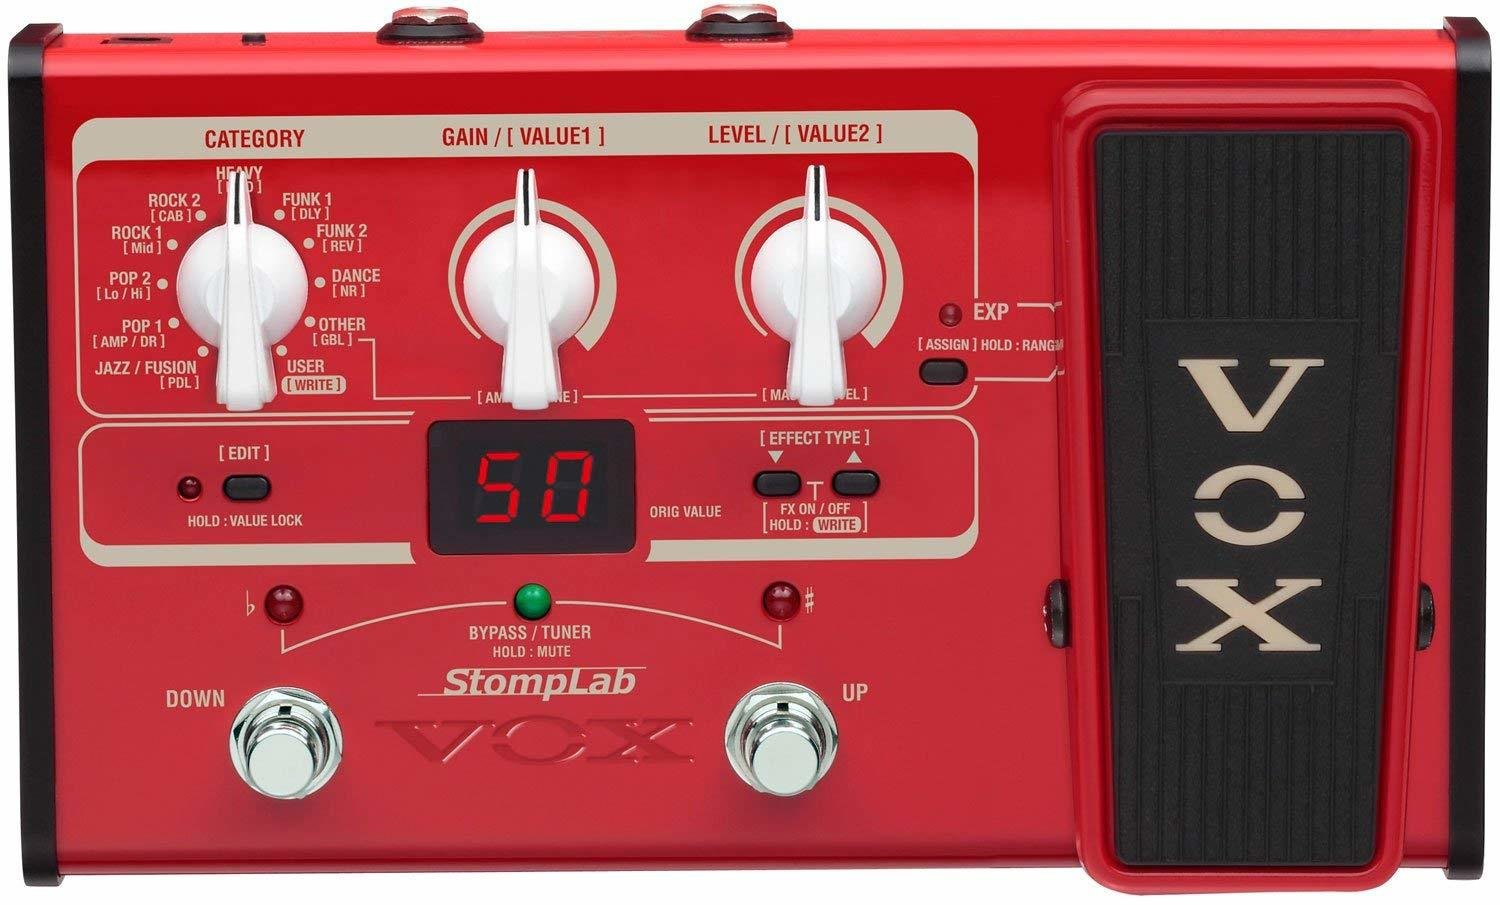 VOX StompLab 2B Multi-Effects Modeling Pedal